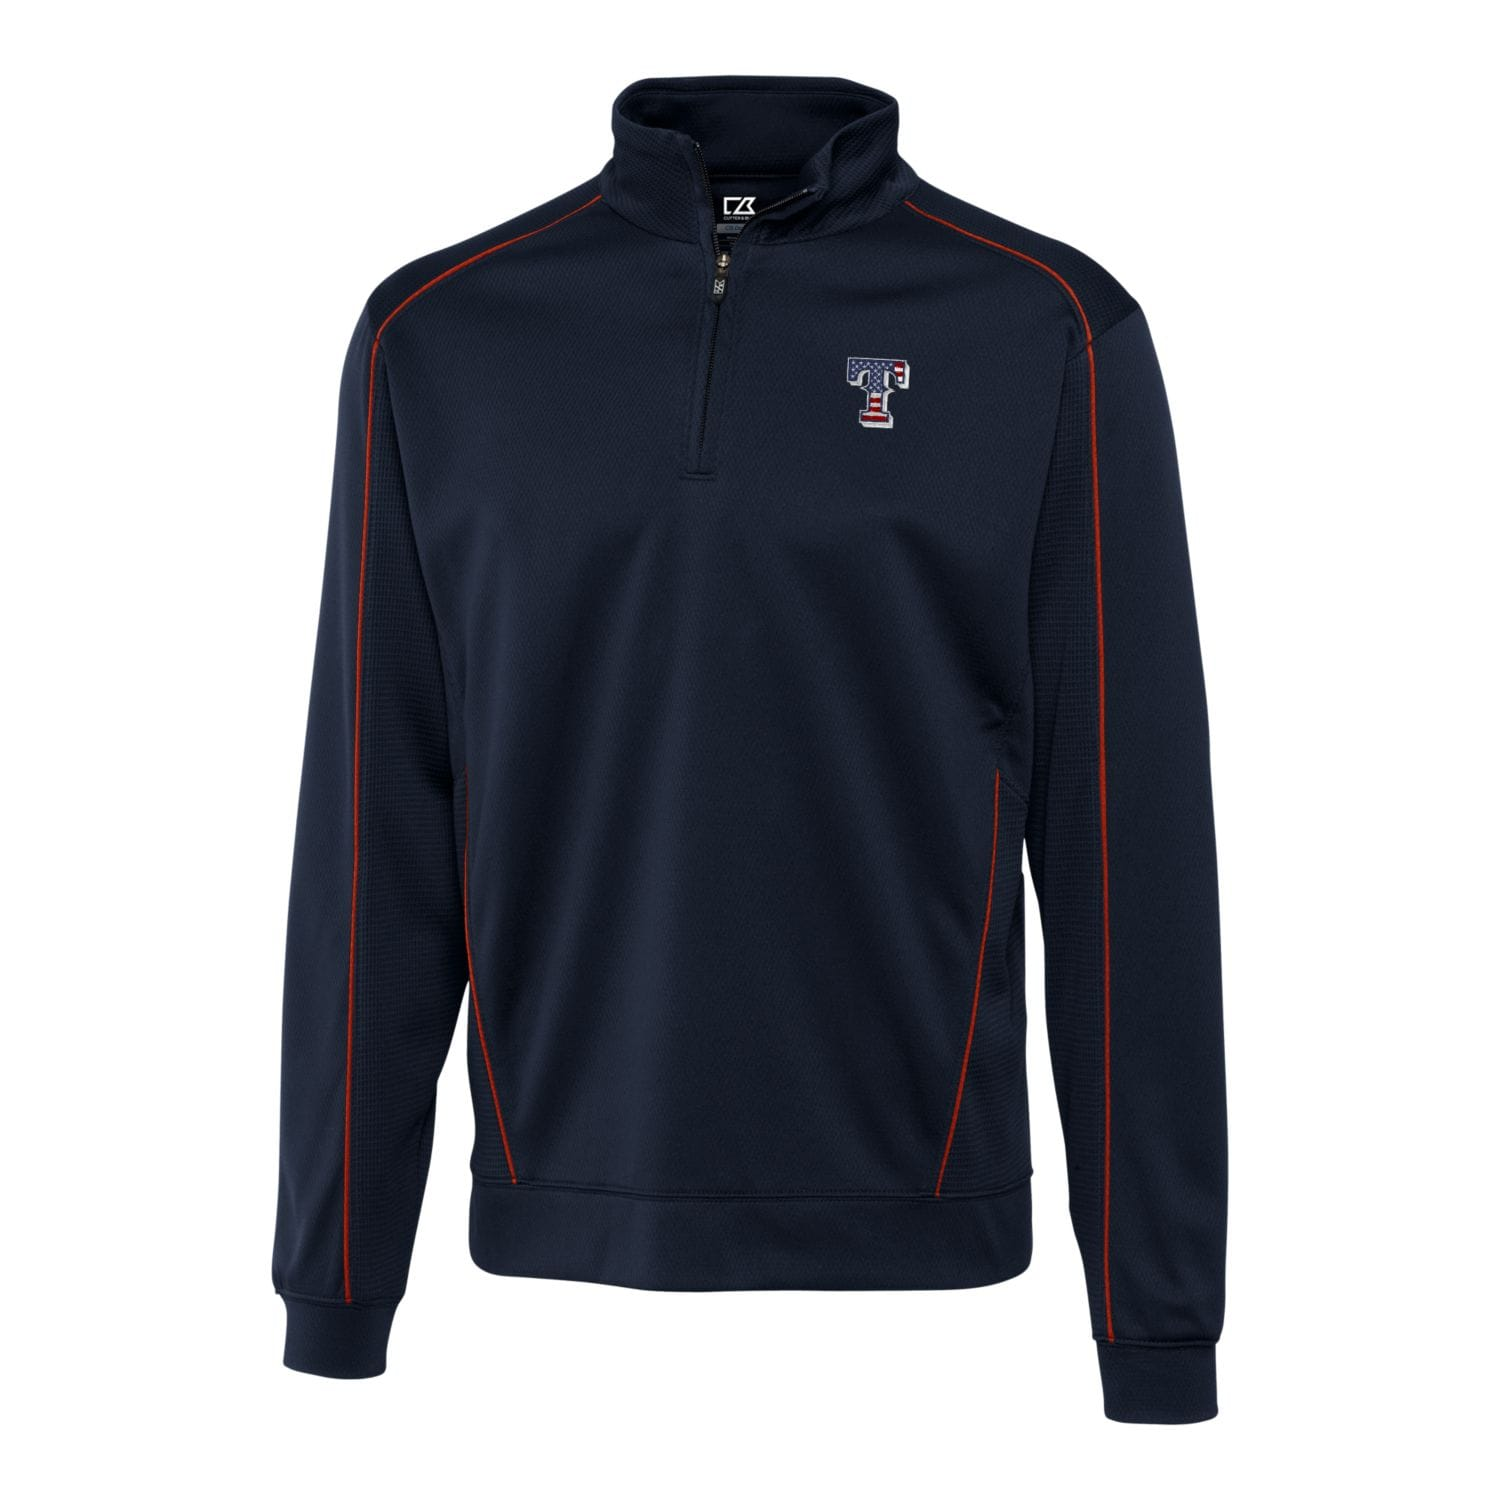 Texas Rangers Cutter & Buck Stars & Stripes Big & Tall DryTec Edge Half-Zip Pullover Jacket - Navy/Red